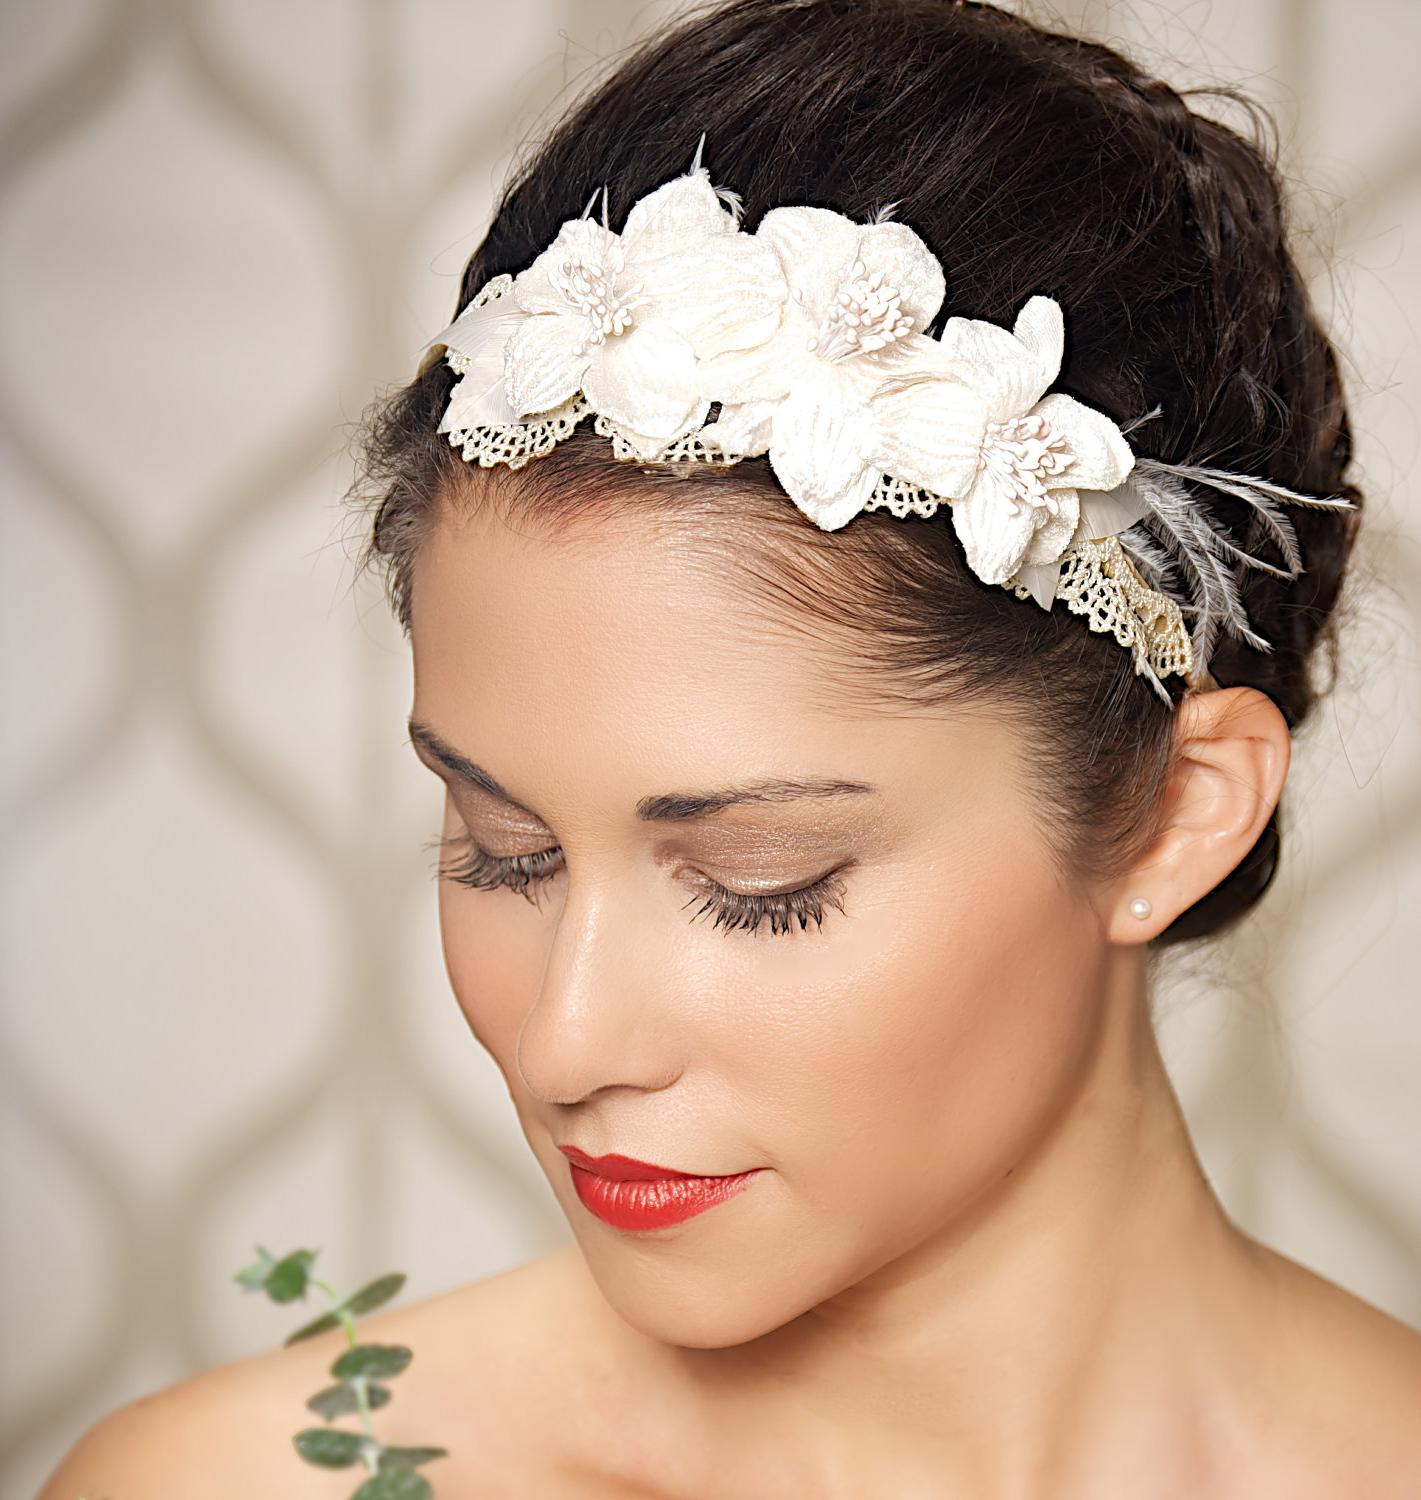 How cute is this headband?